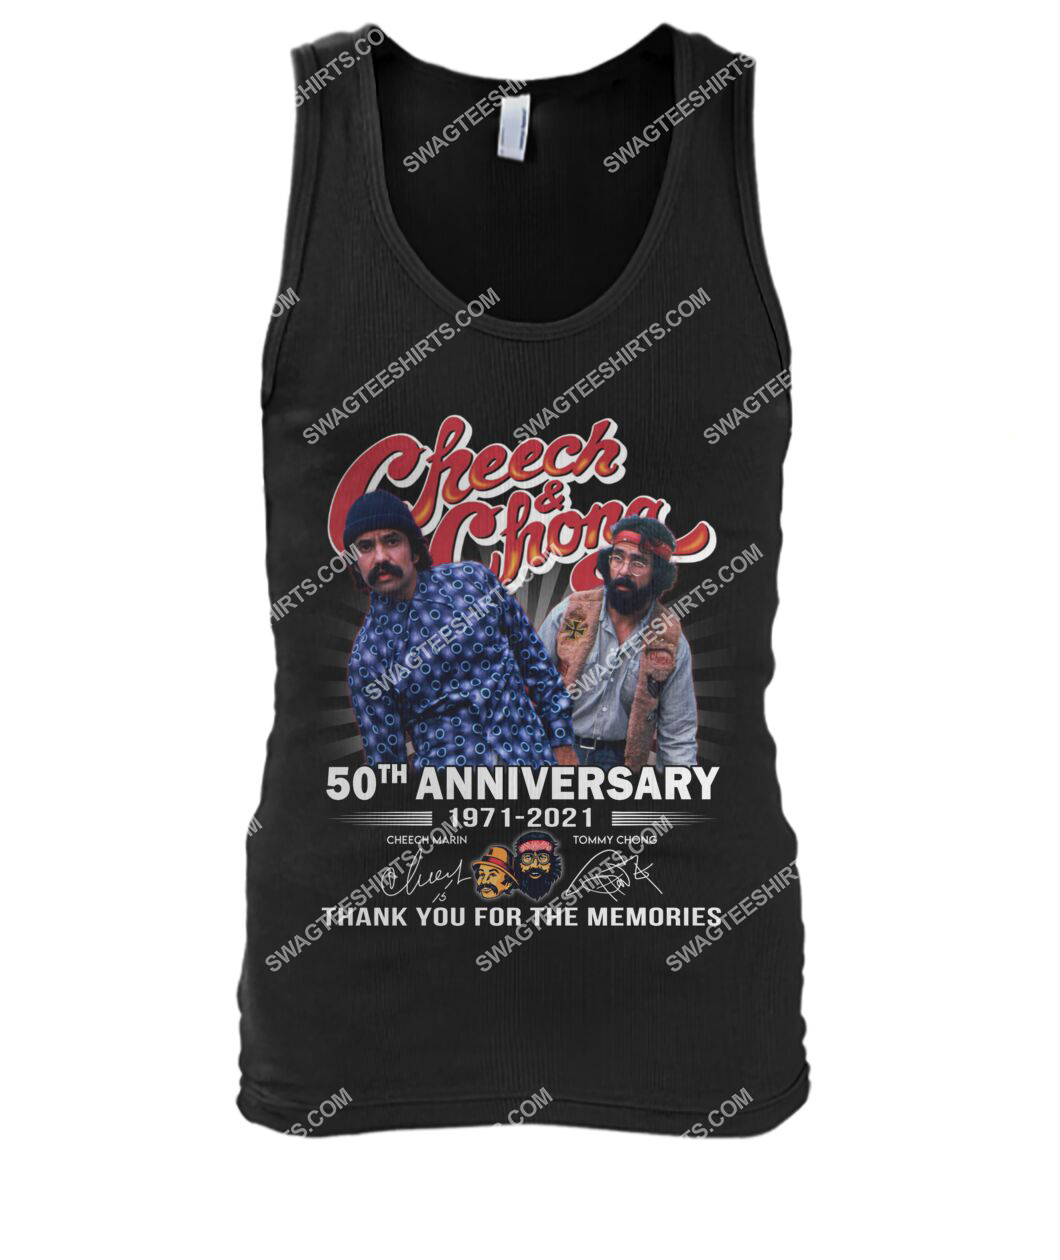 cheech and chong 50th anniversary signatures thank you for memories tank top 1